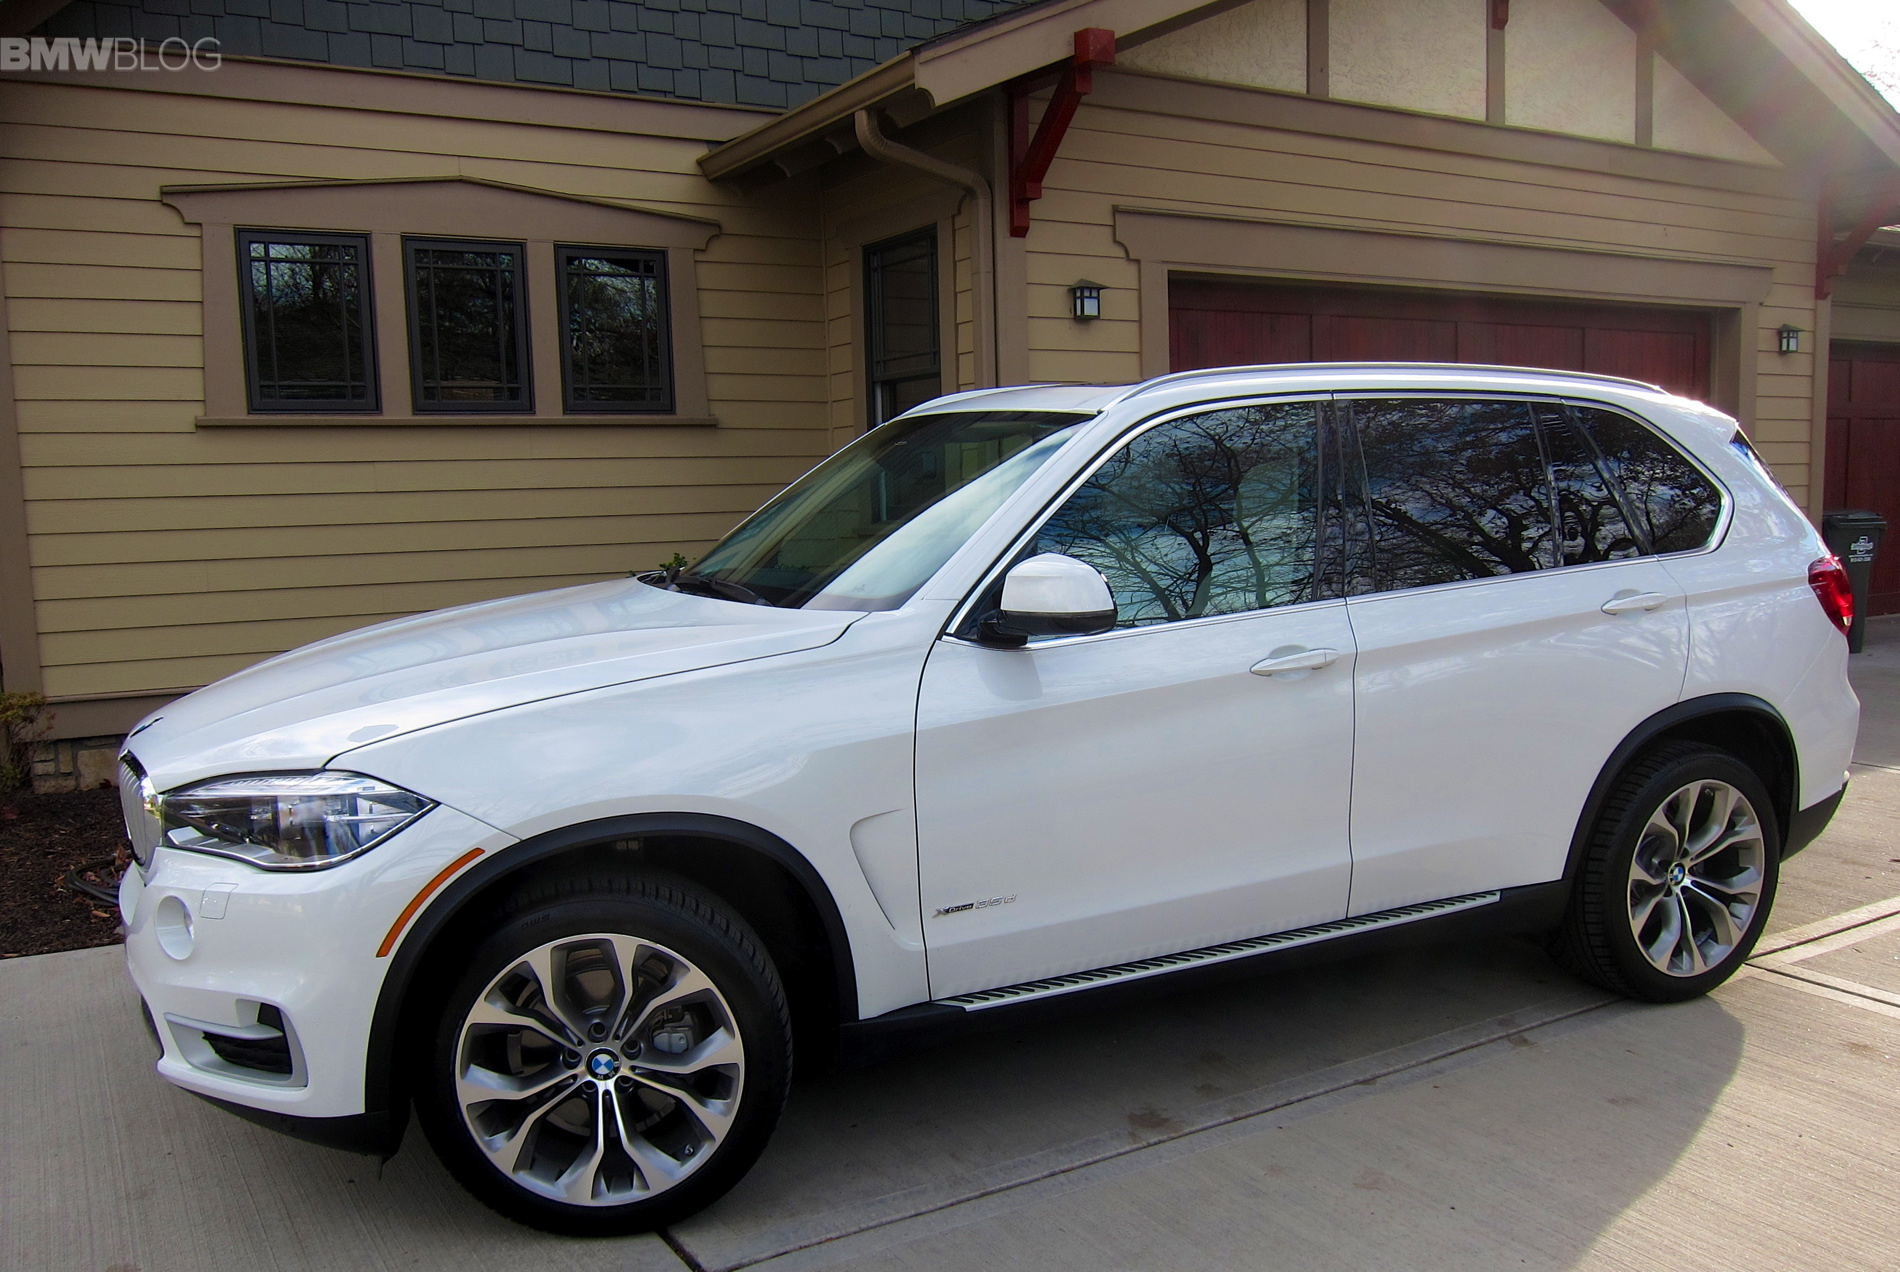 2016 Bmw X5 Xdrive35d Undergoes Minor Technical Updates